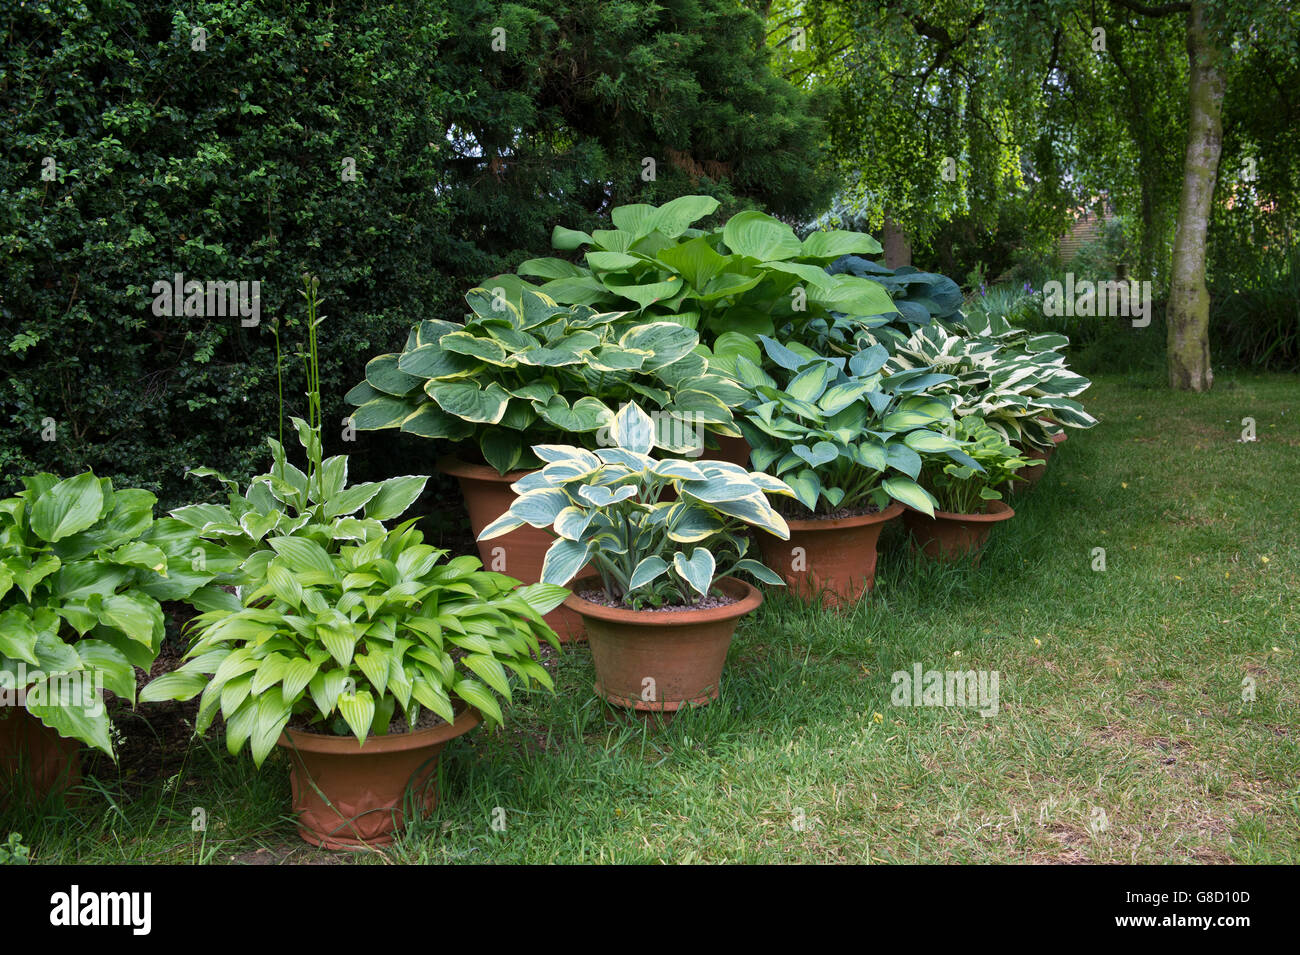 hosta pflanzen in blument pfen in cotswolds cottage garten ashton unter hill wychavon bezirk. Black Bedroom Furniture Sets. Home Design Ideas